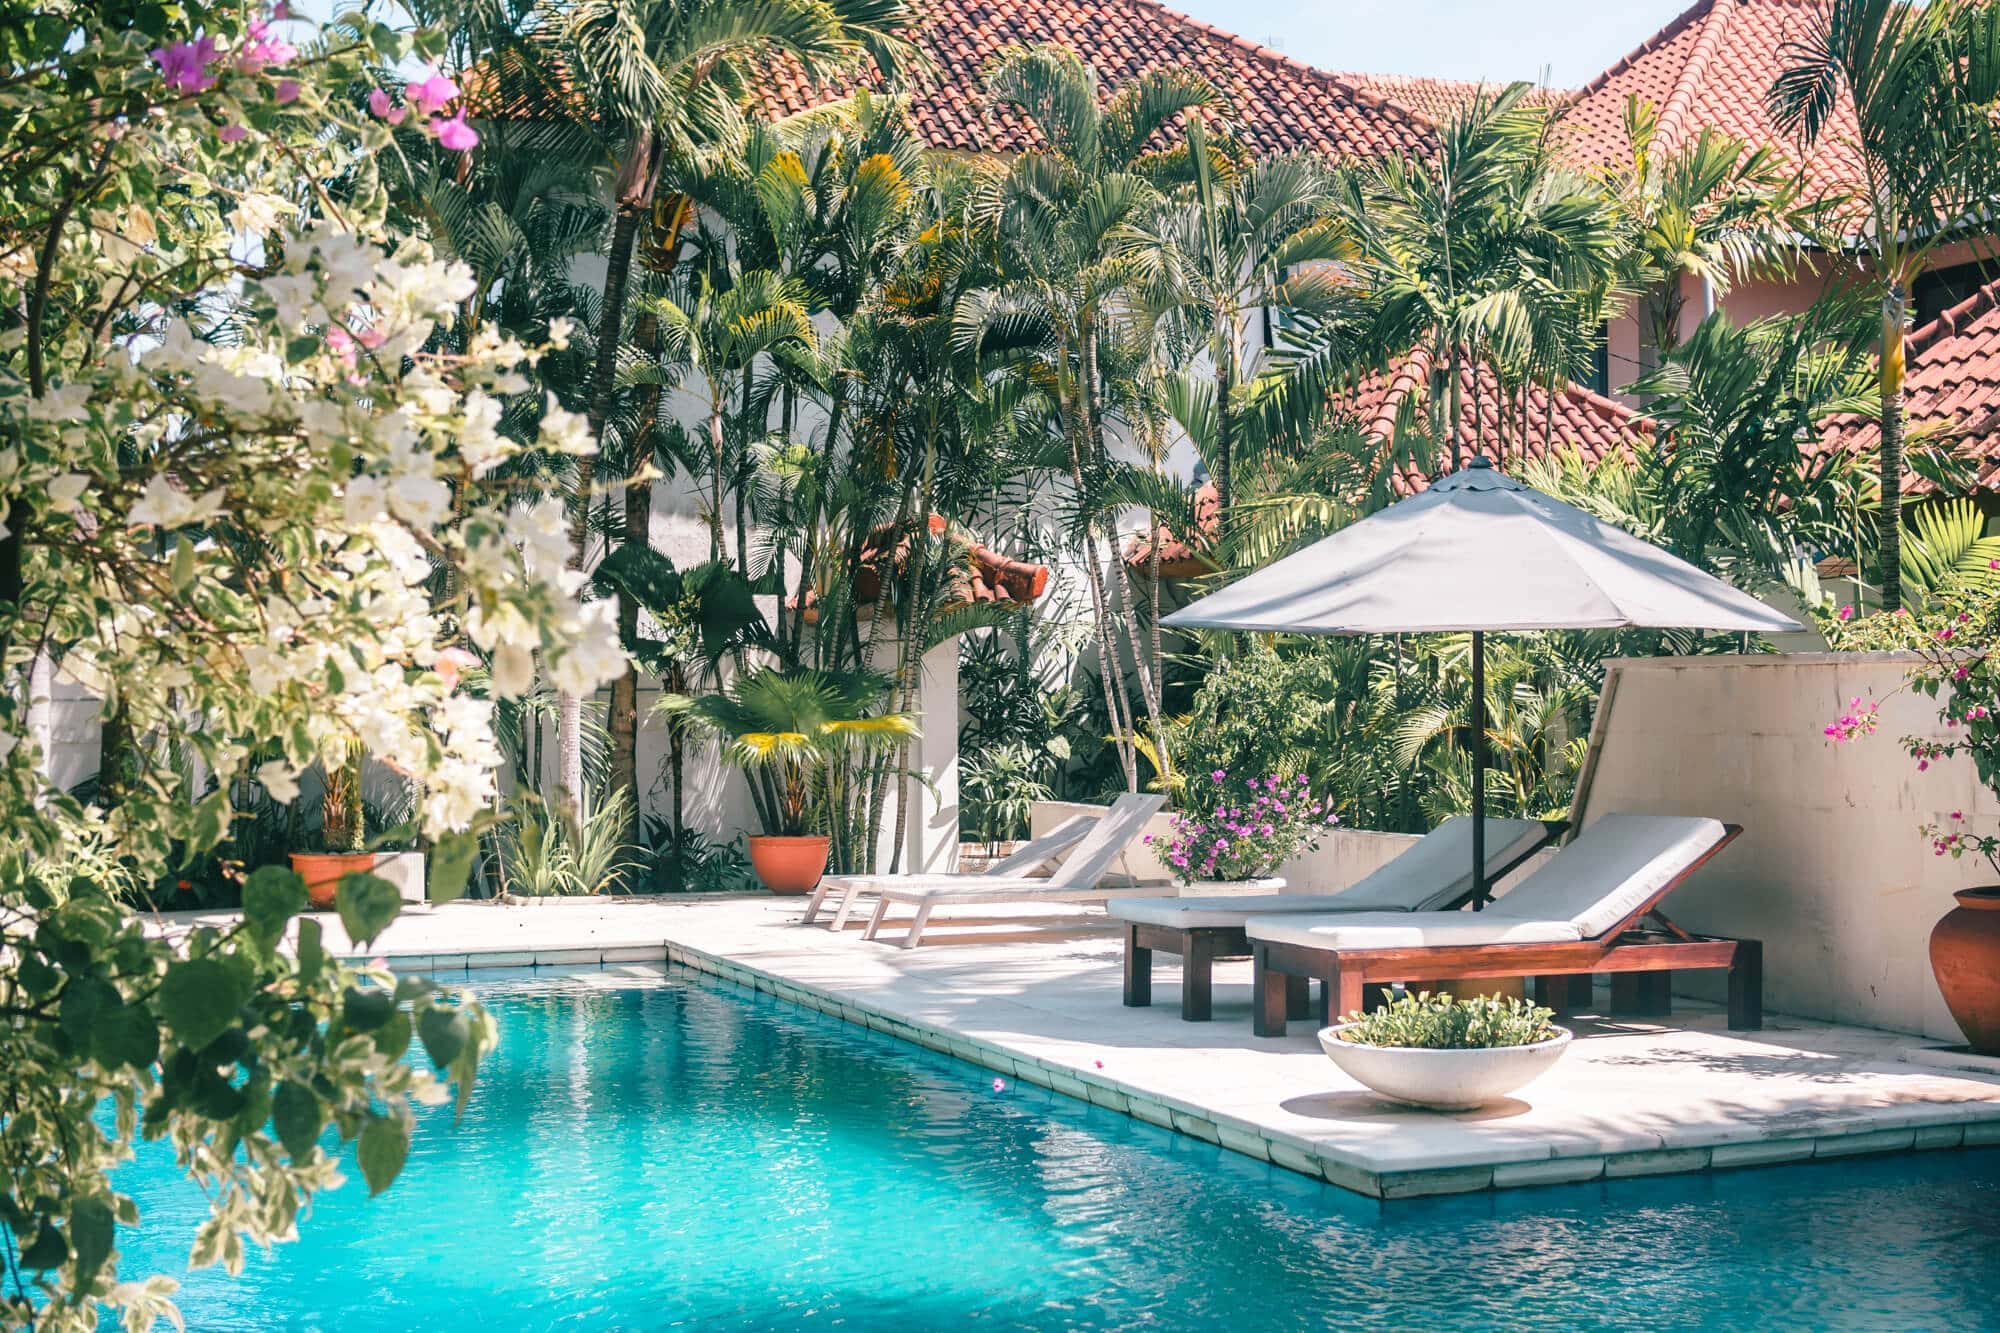 Bali's best budget hotels, villas & Airbnbs - Stay in style in this Instagrammable villa in Seminyak